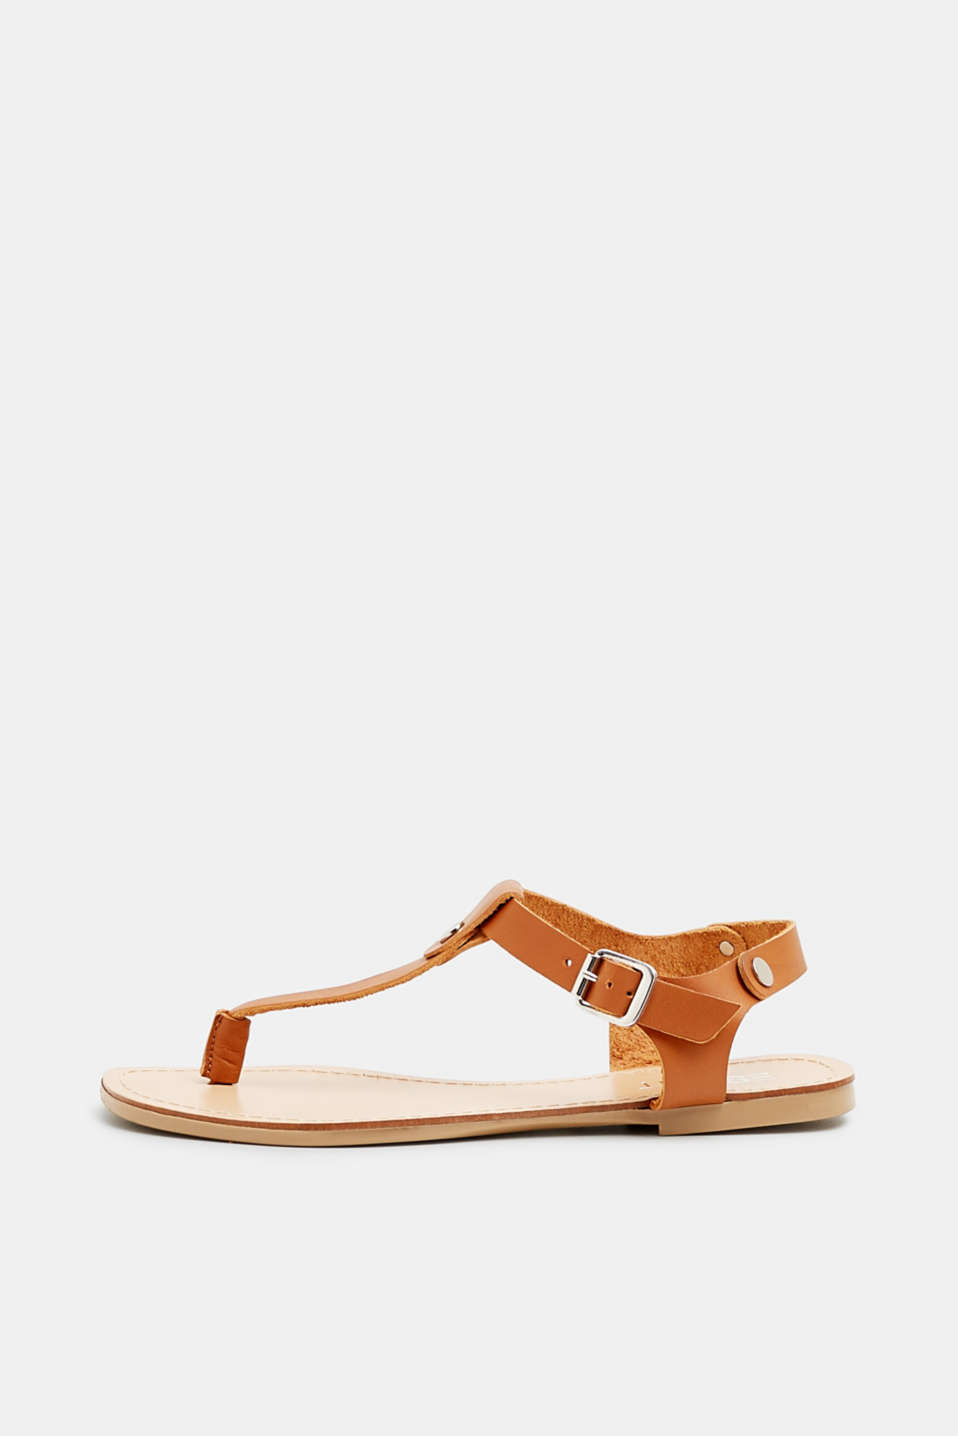 Esprit - Leather thong sandals